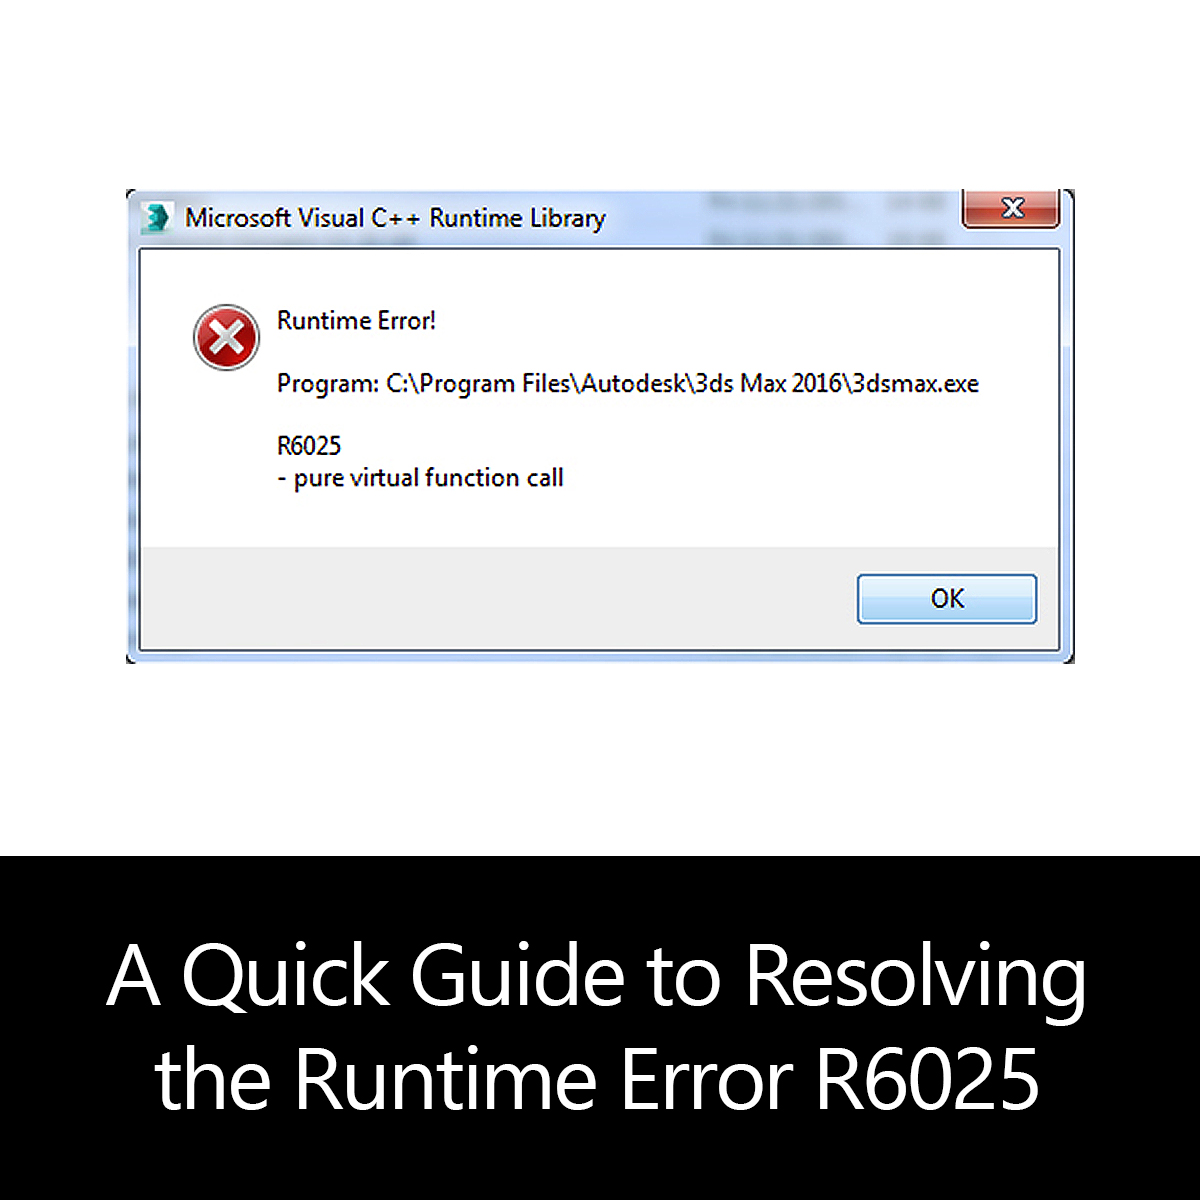 A Quick Guide to Resolving the Runtime Error R6025